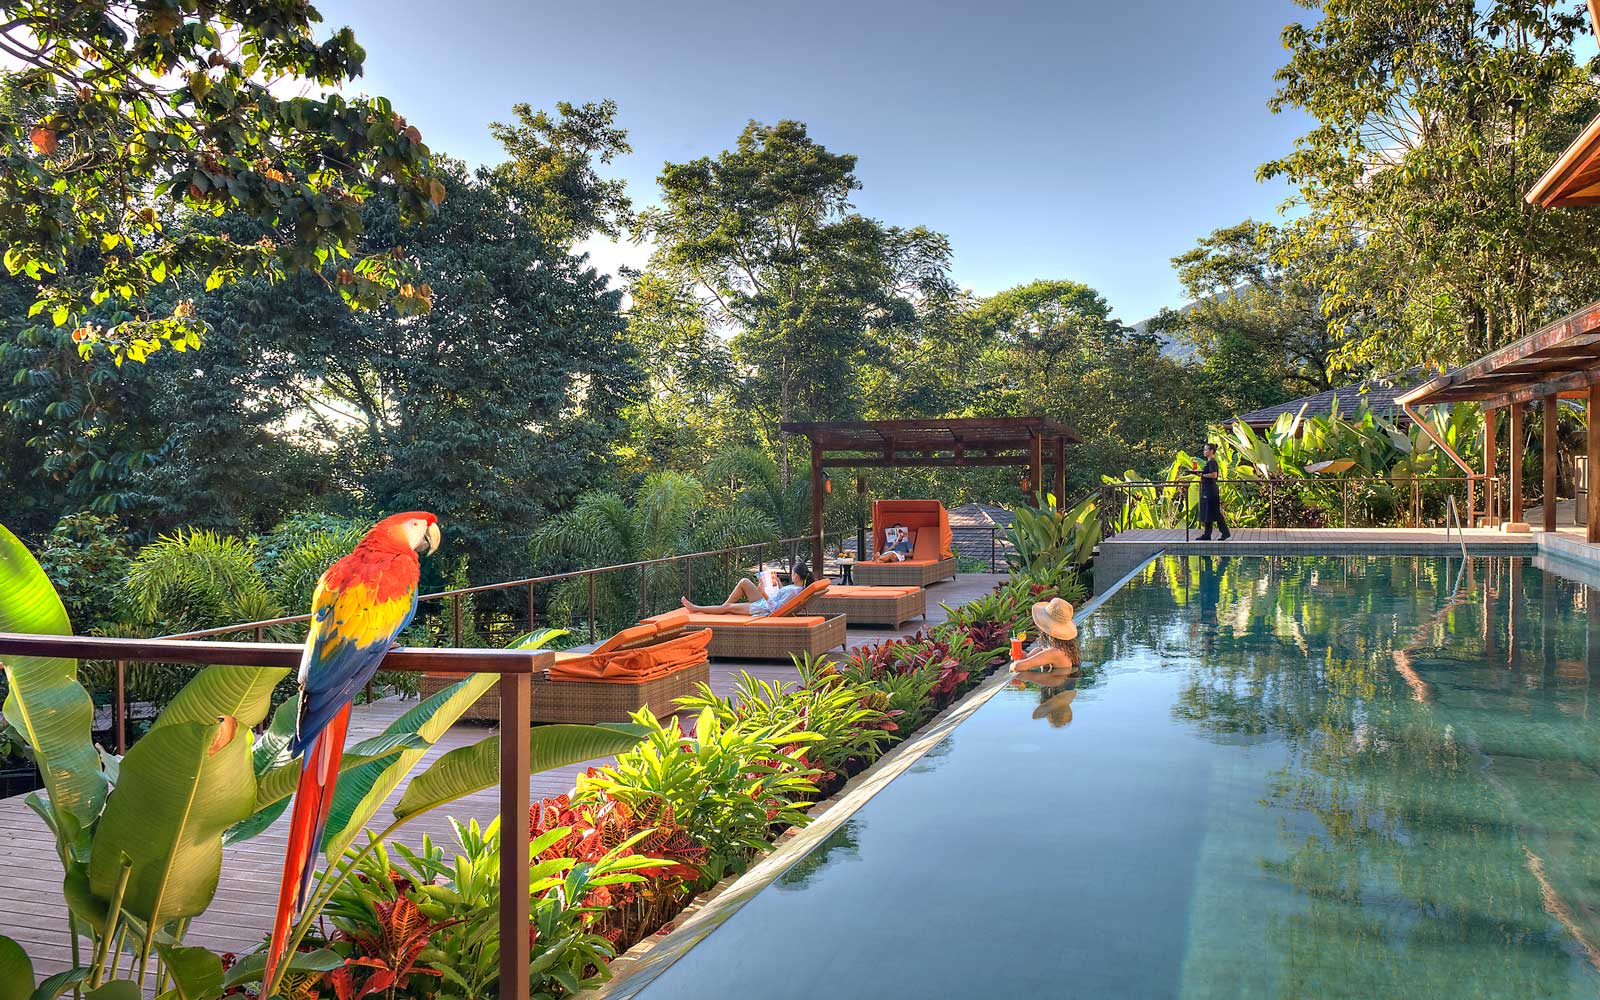 Get 34% Off a 4-night Stay at the Nayara Springs Resort in Costa Rica